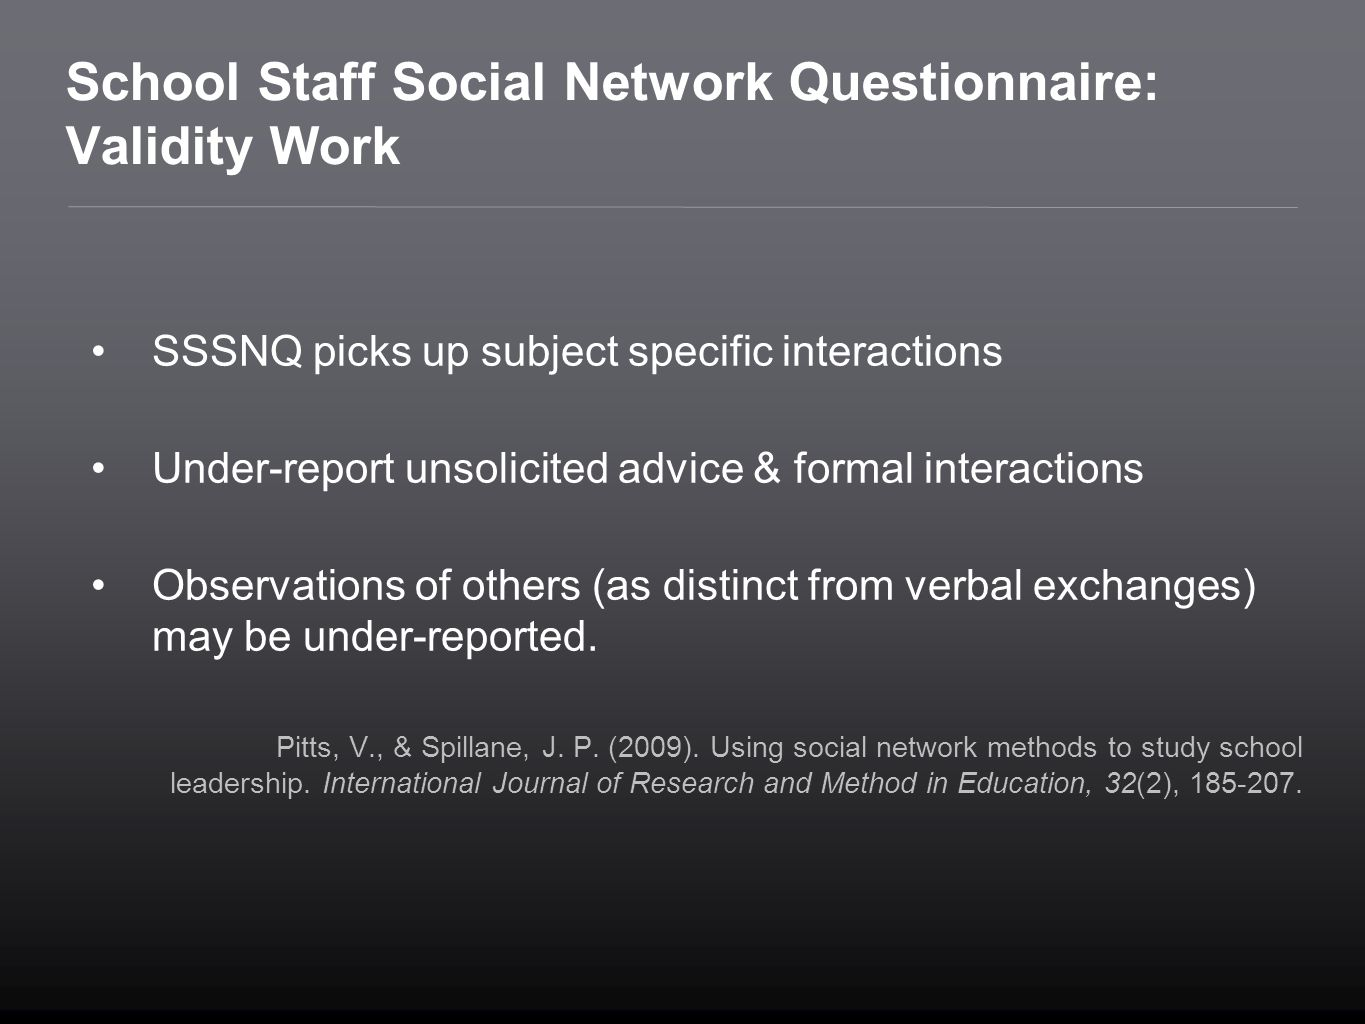 School Staff Social Network Questionnaire: Validity Work